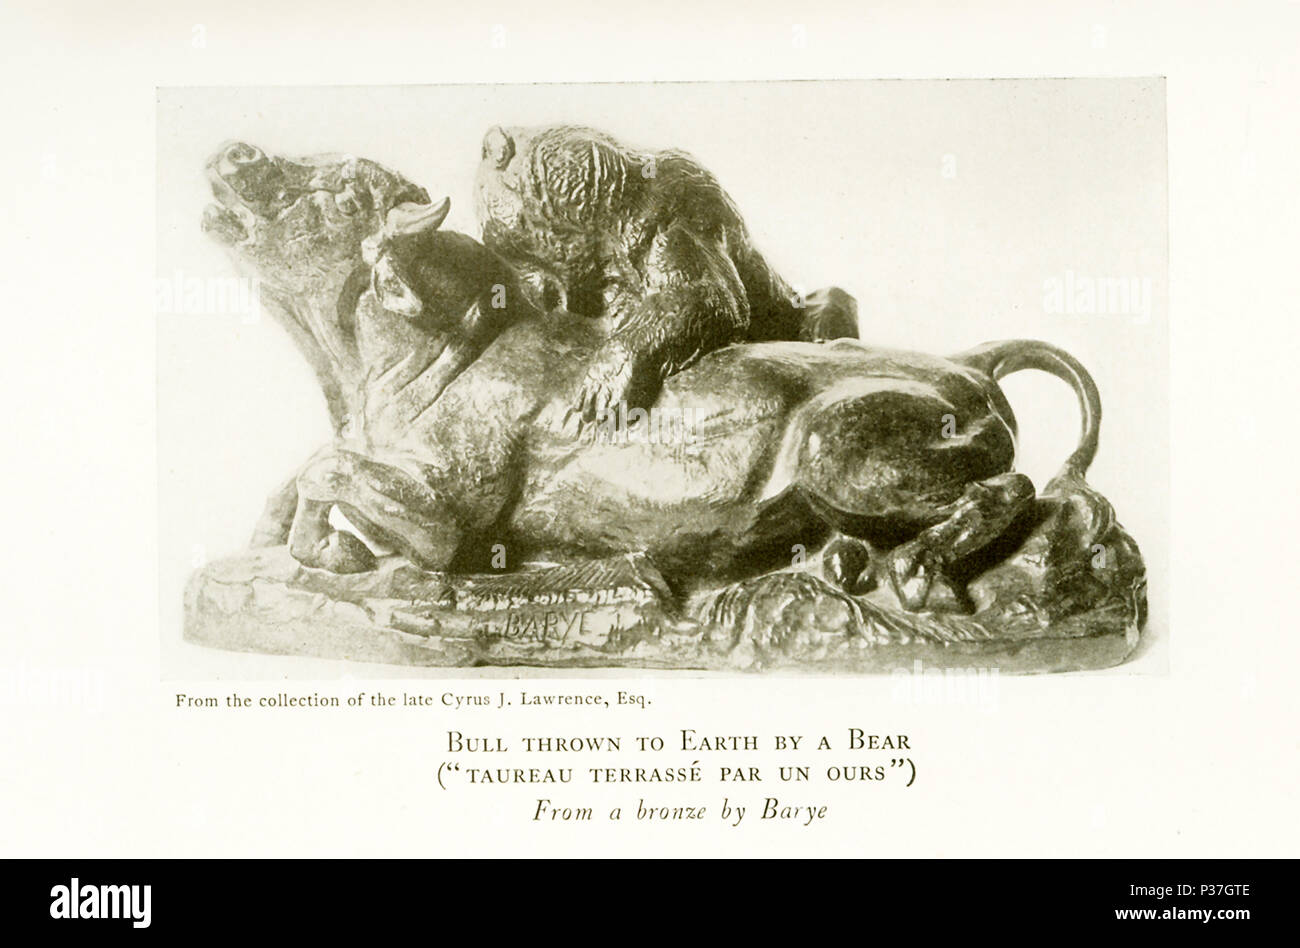 """Antoine Louis Barye  (1795-1875) was a Romantic French sculptor. He is best known as a sculptor of animals (therefore, an animalier). This sculpture by Barye is titled """"Bull thrown to earth by a bear"""" ('Taureau terasse par un ous') and belonged to the collection of the late Cyrus J. Lawrence, Esq. - Stock Image"""